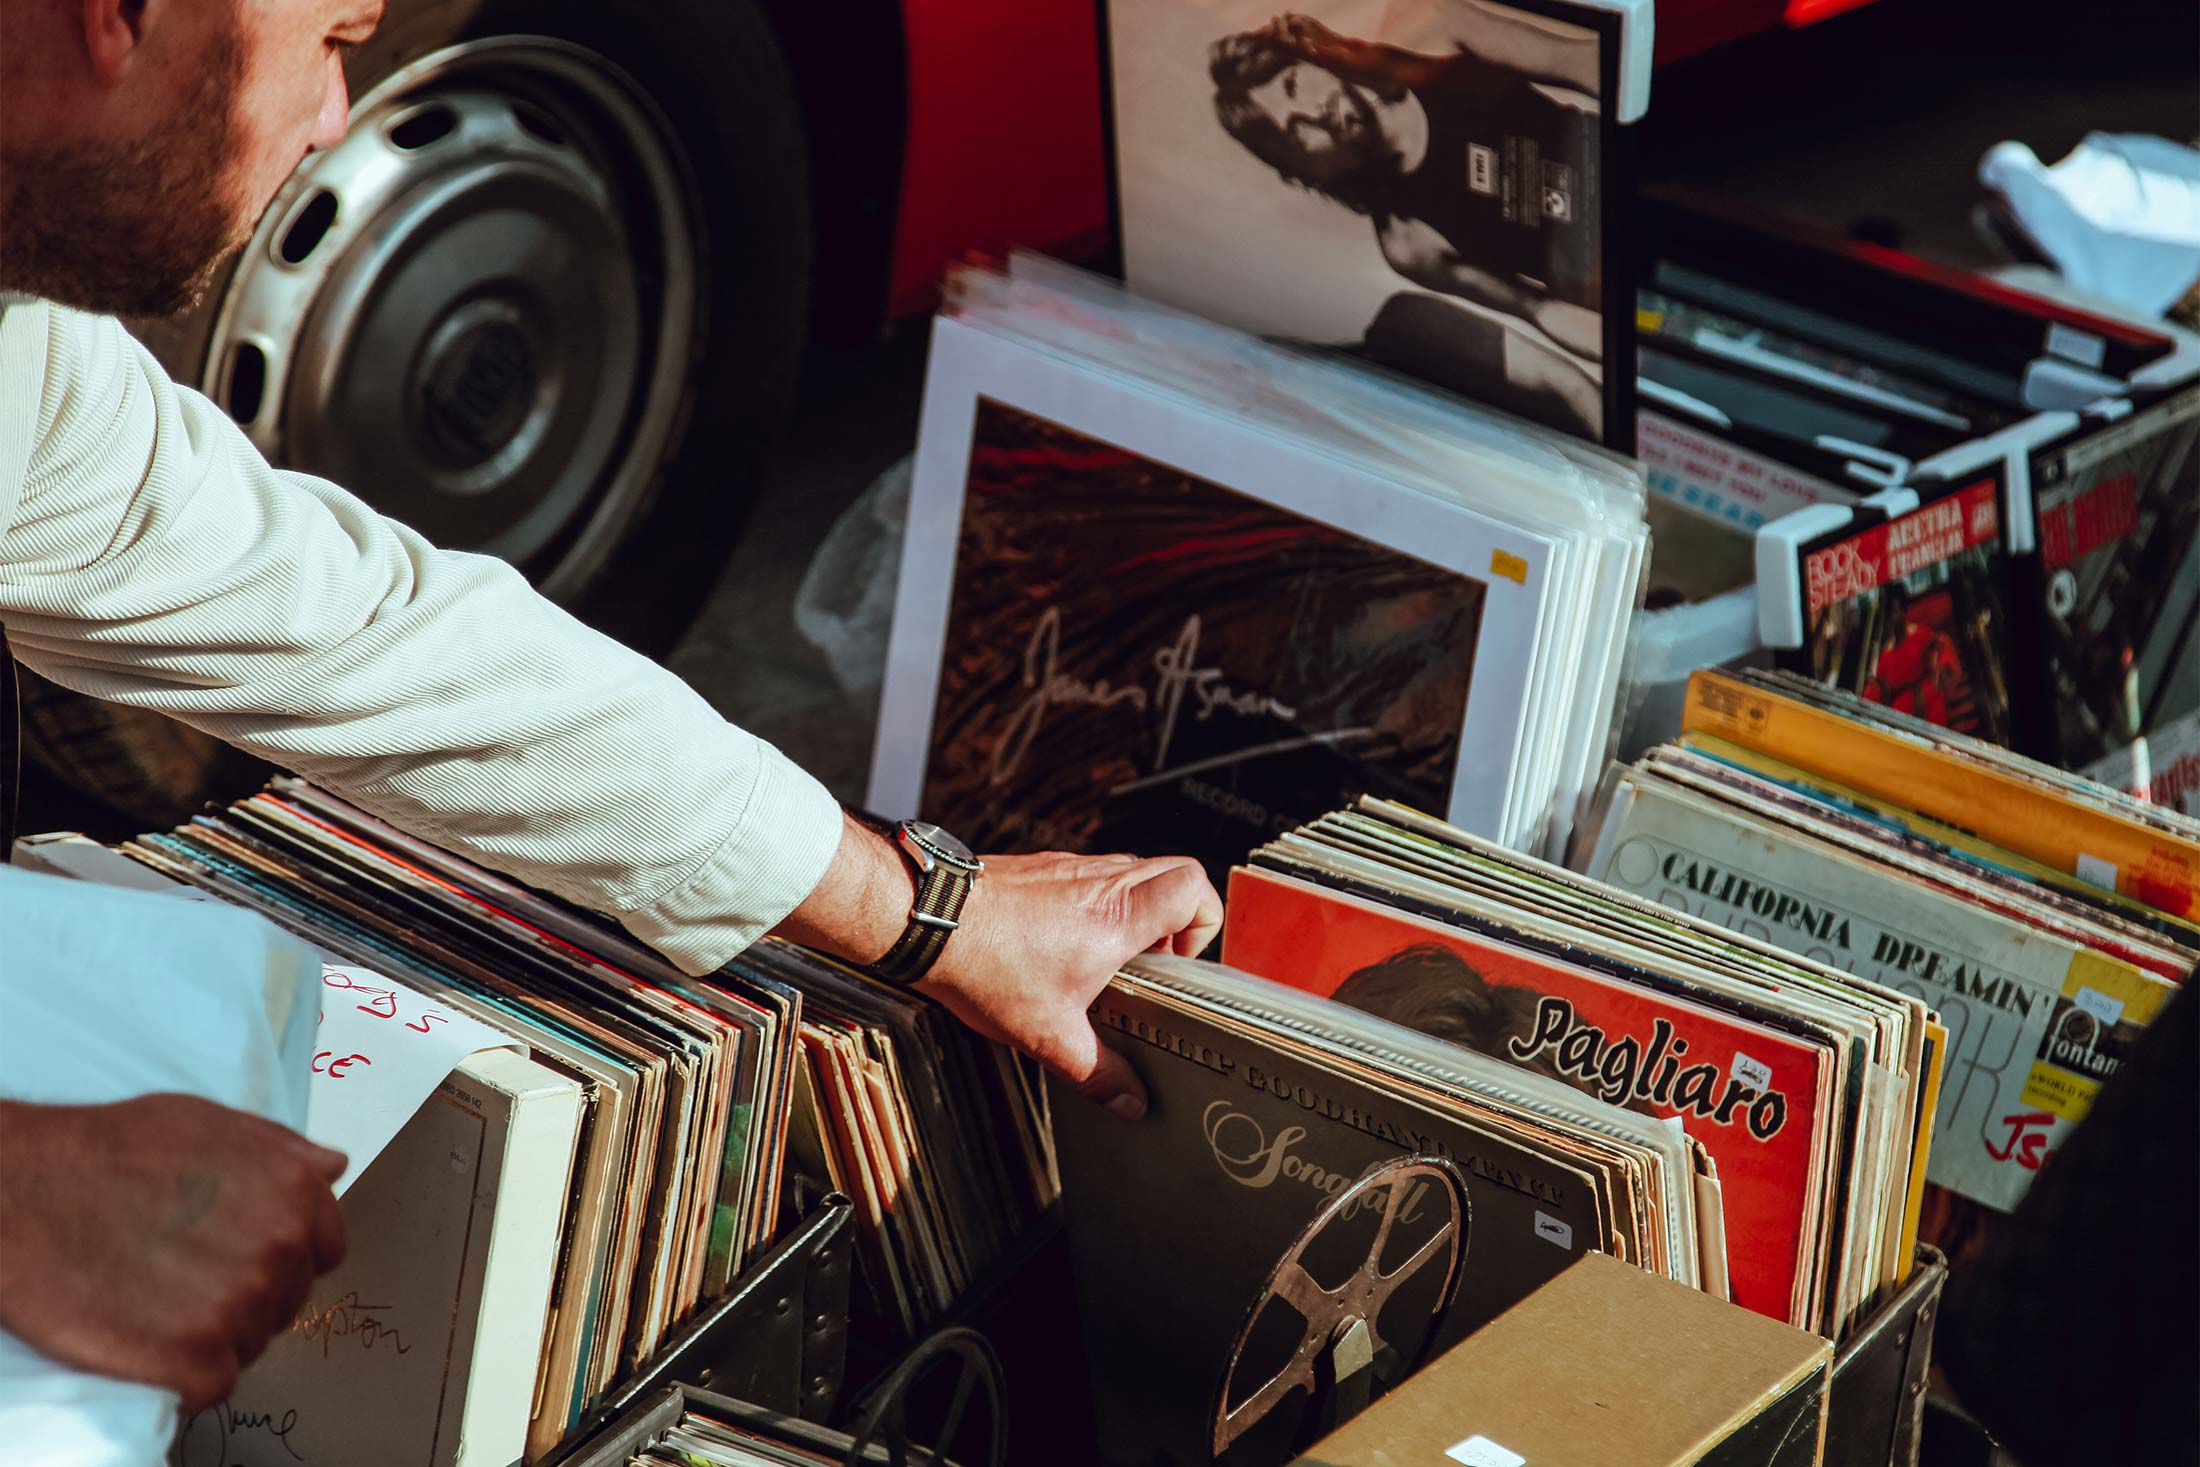 A man looking through a box of used records.